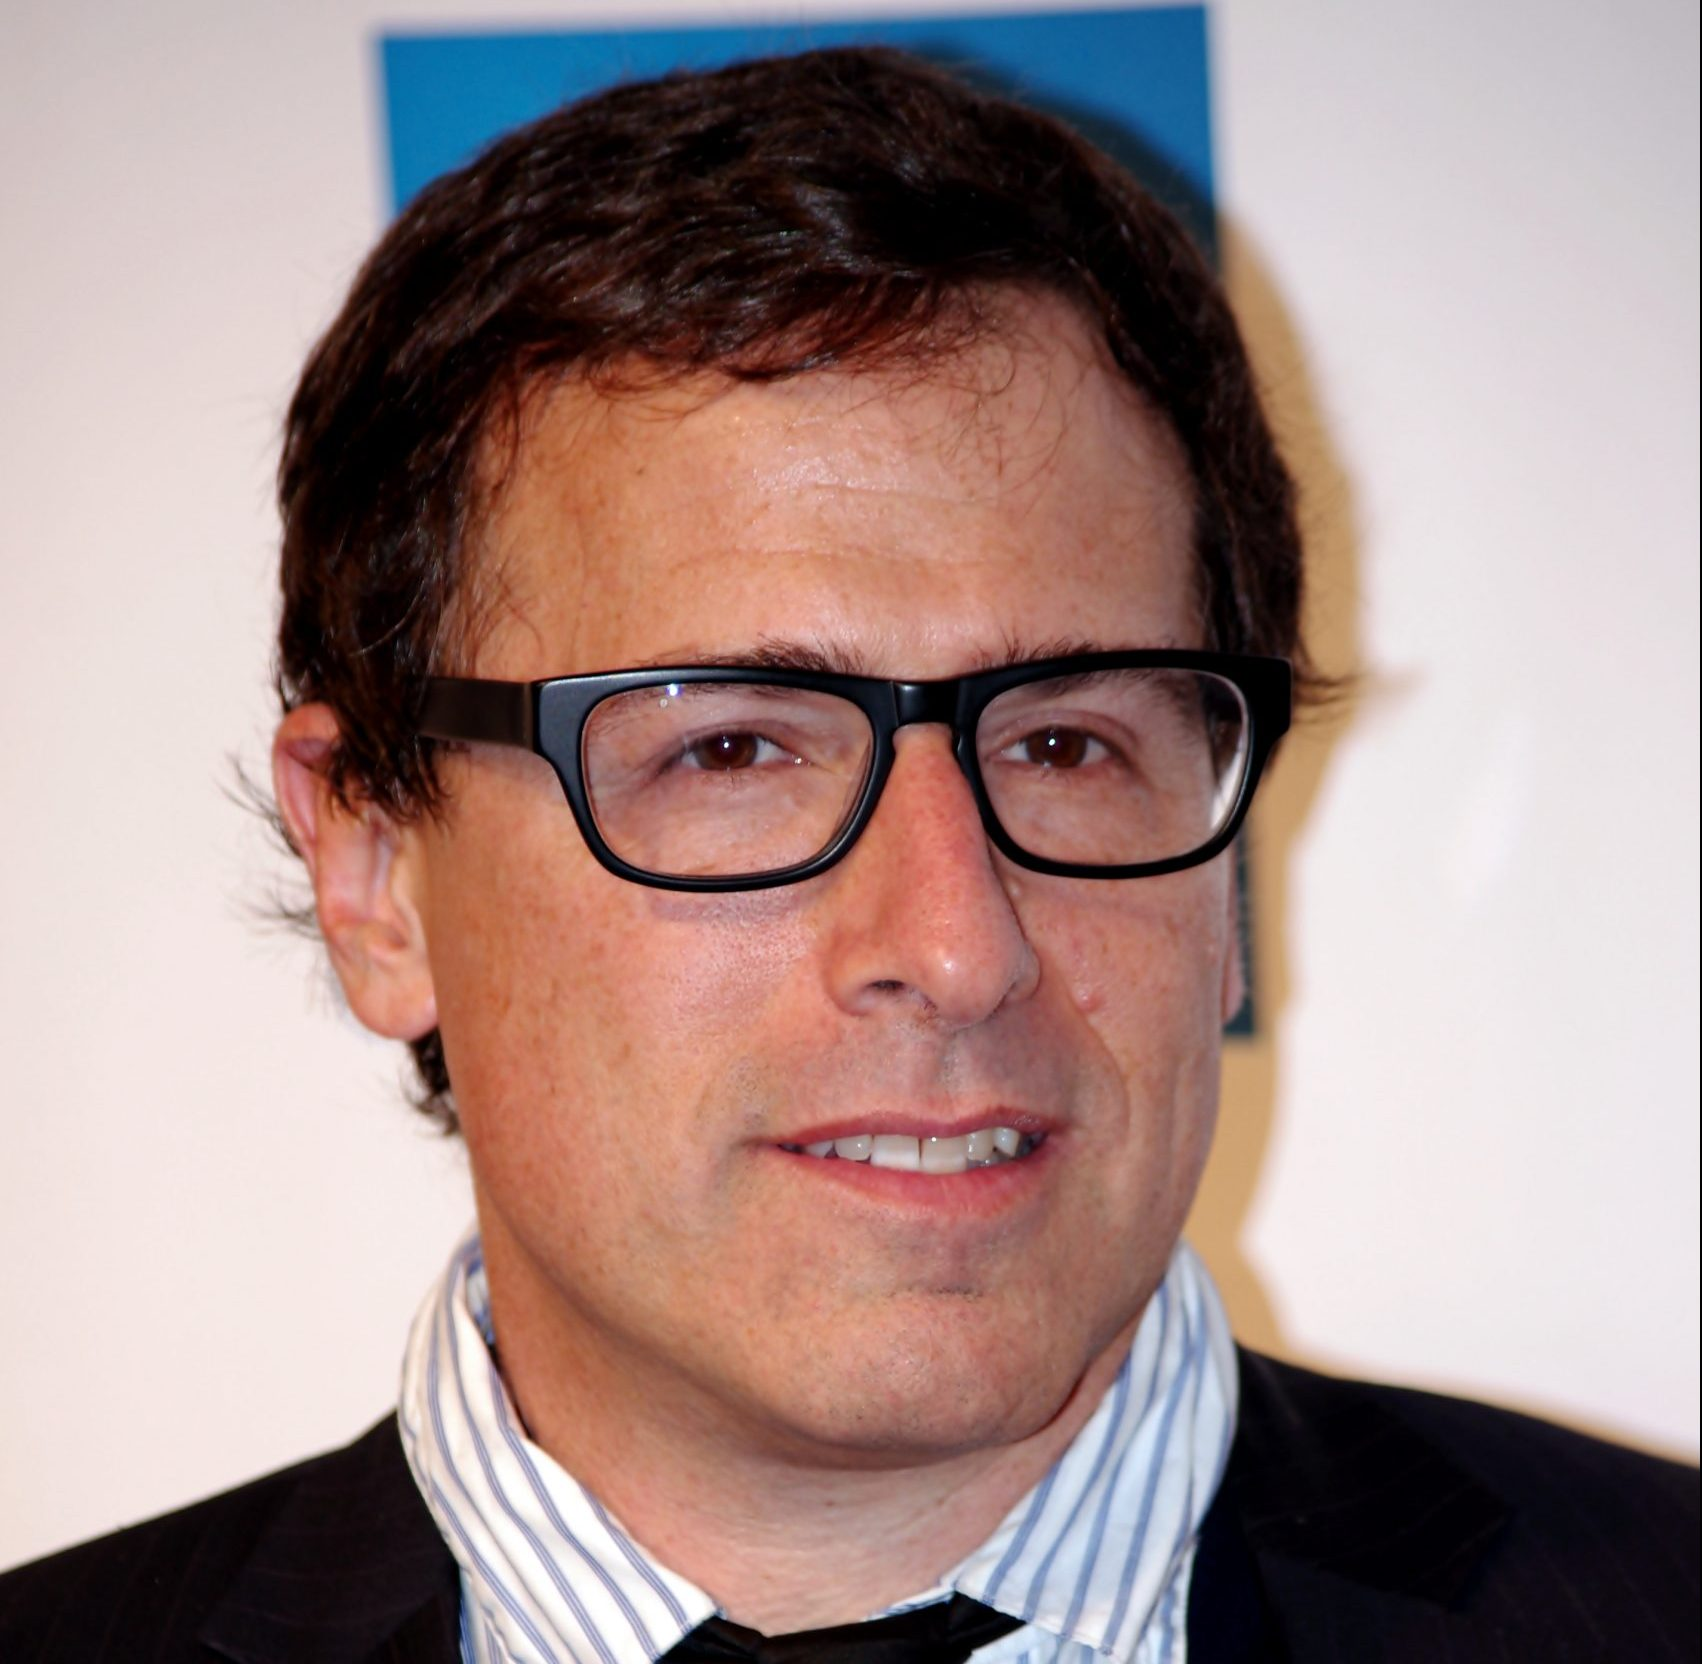 David O Russell 2011 Shankbone scaled e1616590540948 20 Actors And Directors Who Refused To Work With Each Other Ever Again